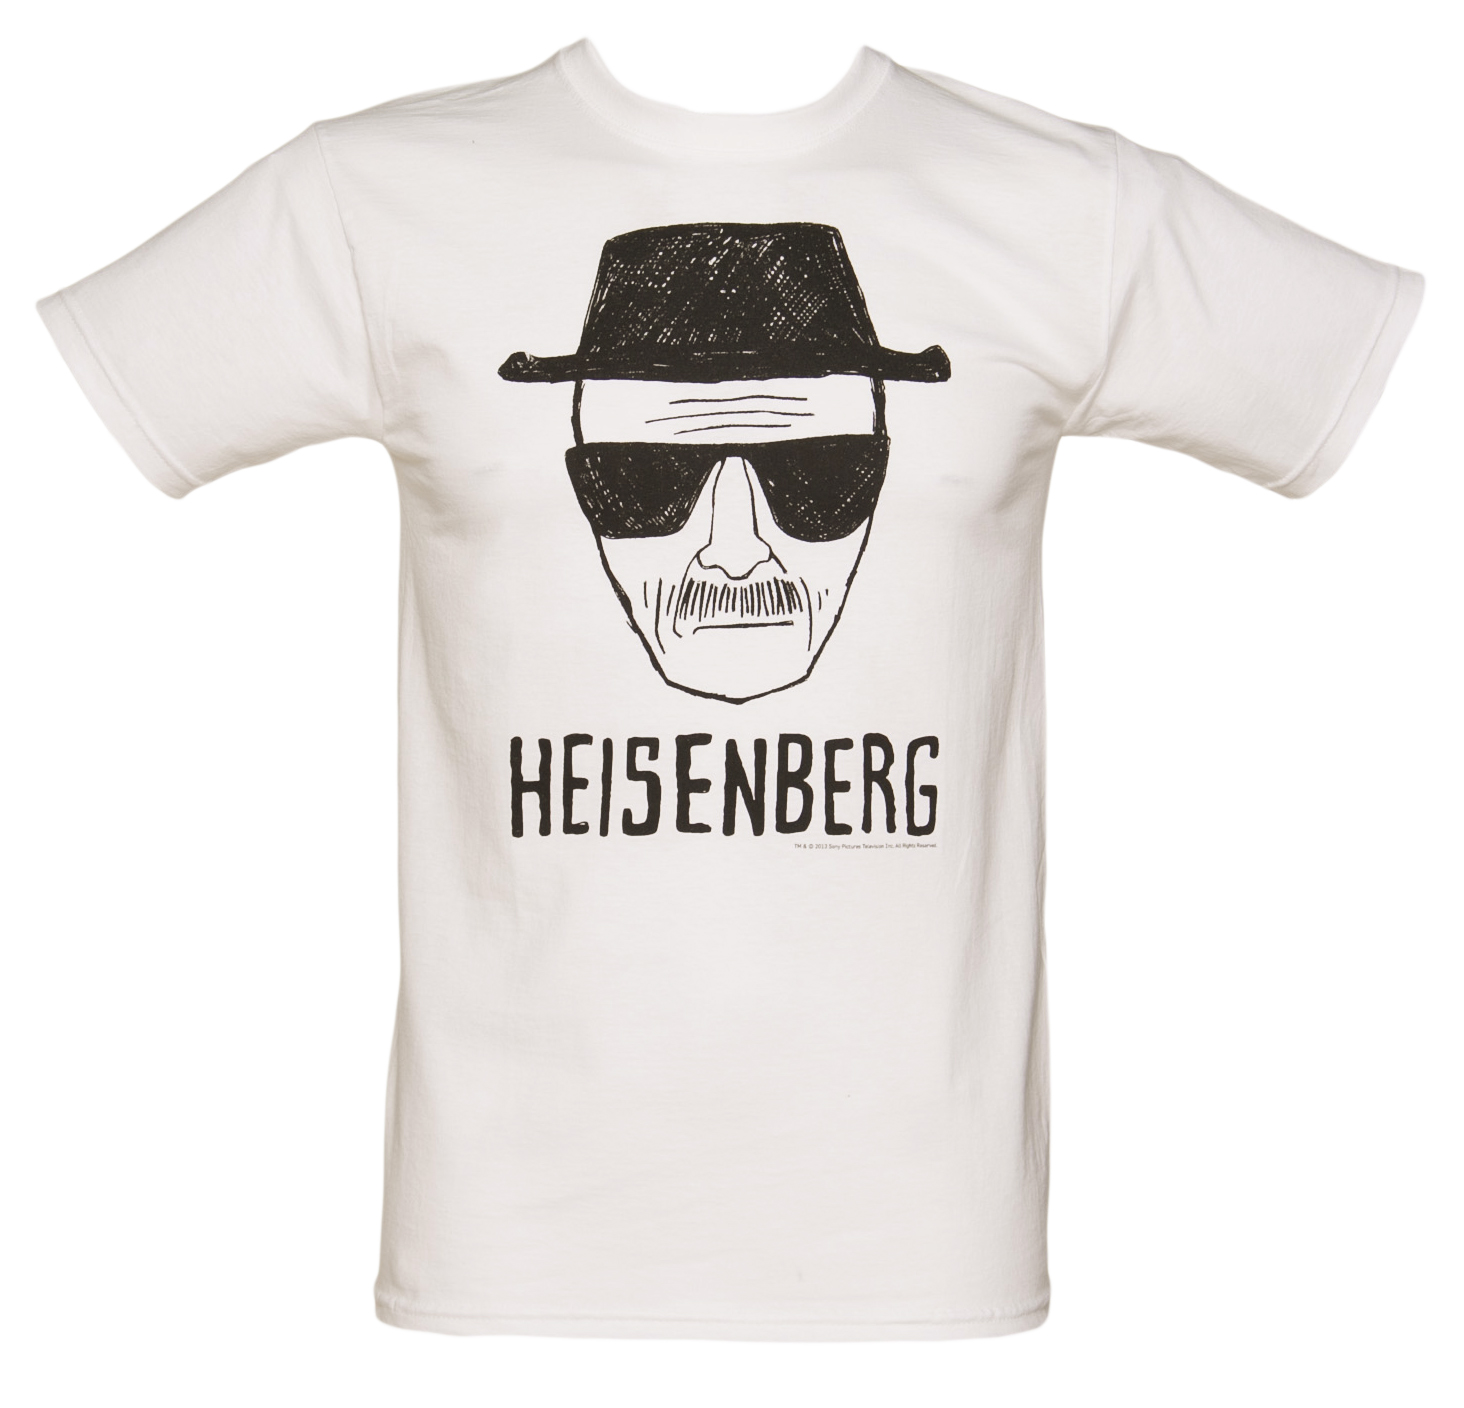 Men's White Heisenberg Sketch Breaking Bad T-Shirt - 21st gift